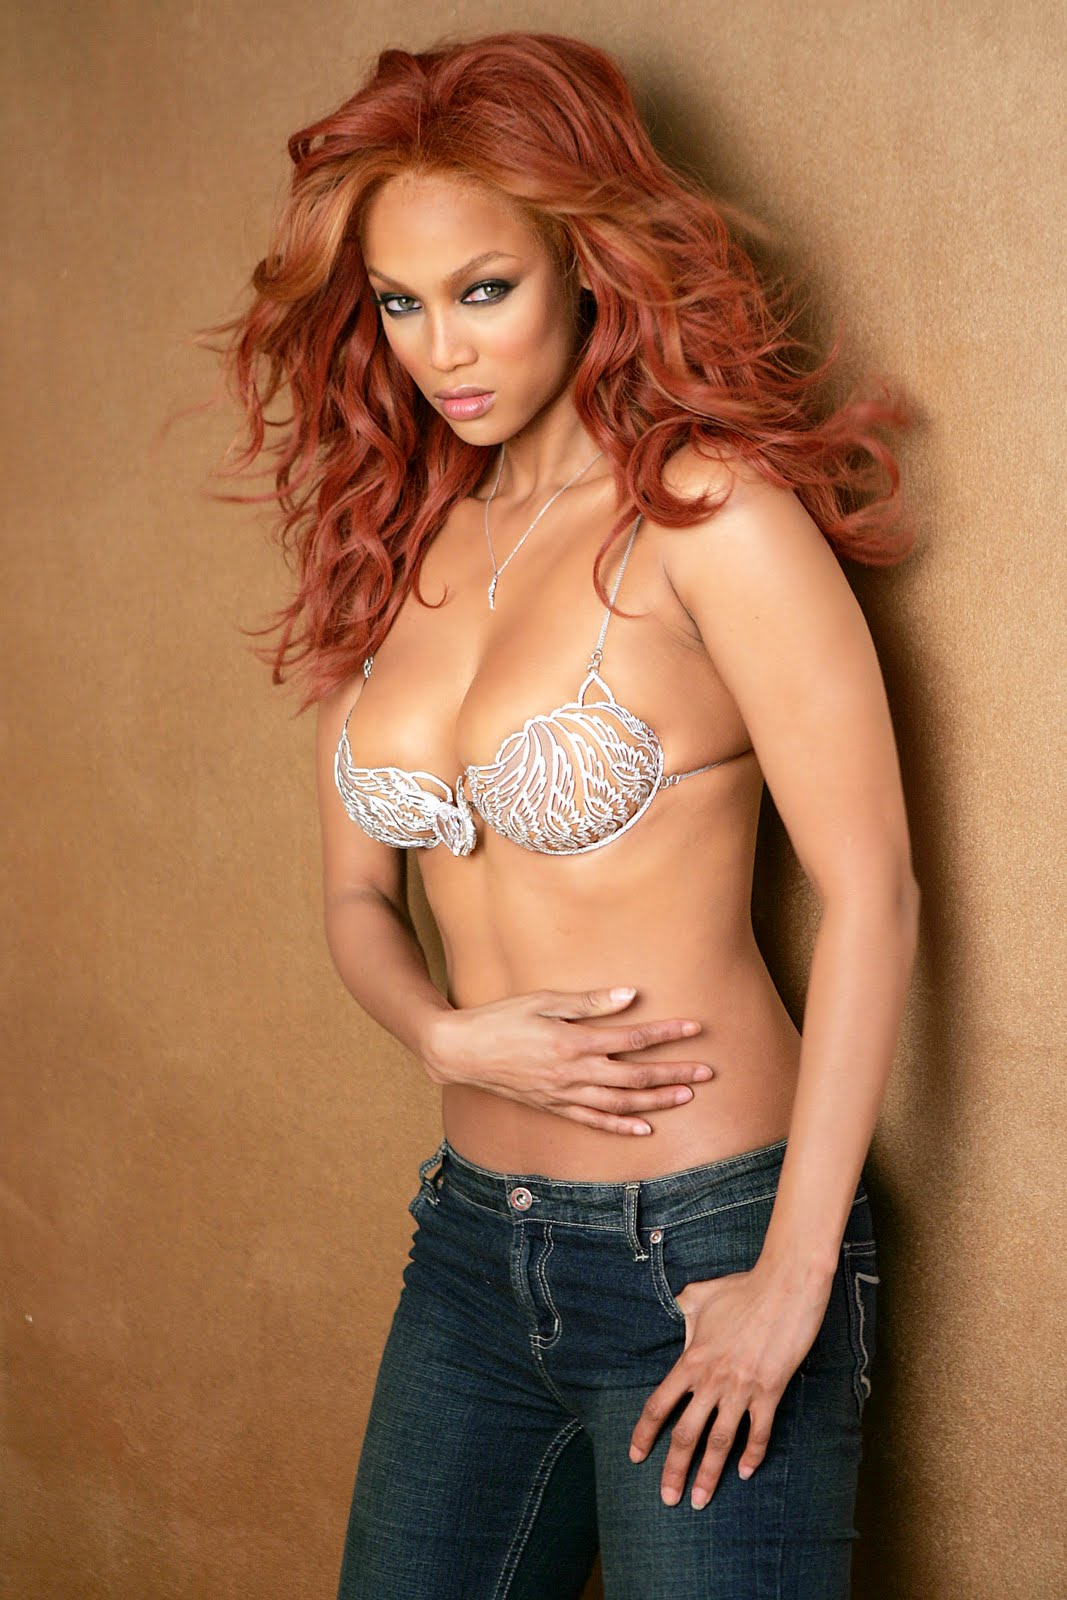 Remarkable, rather Tyra banks victoria secret for